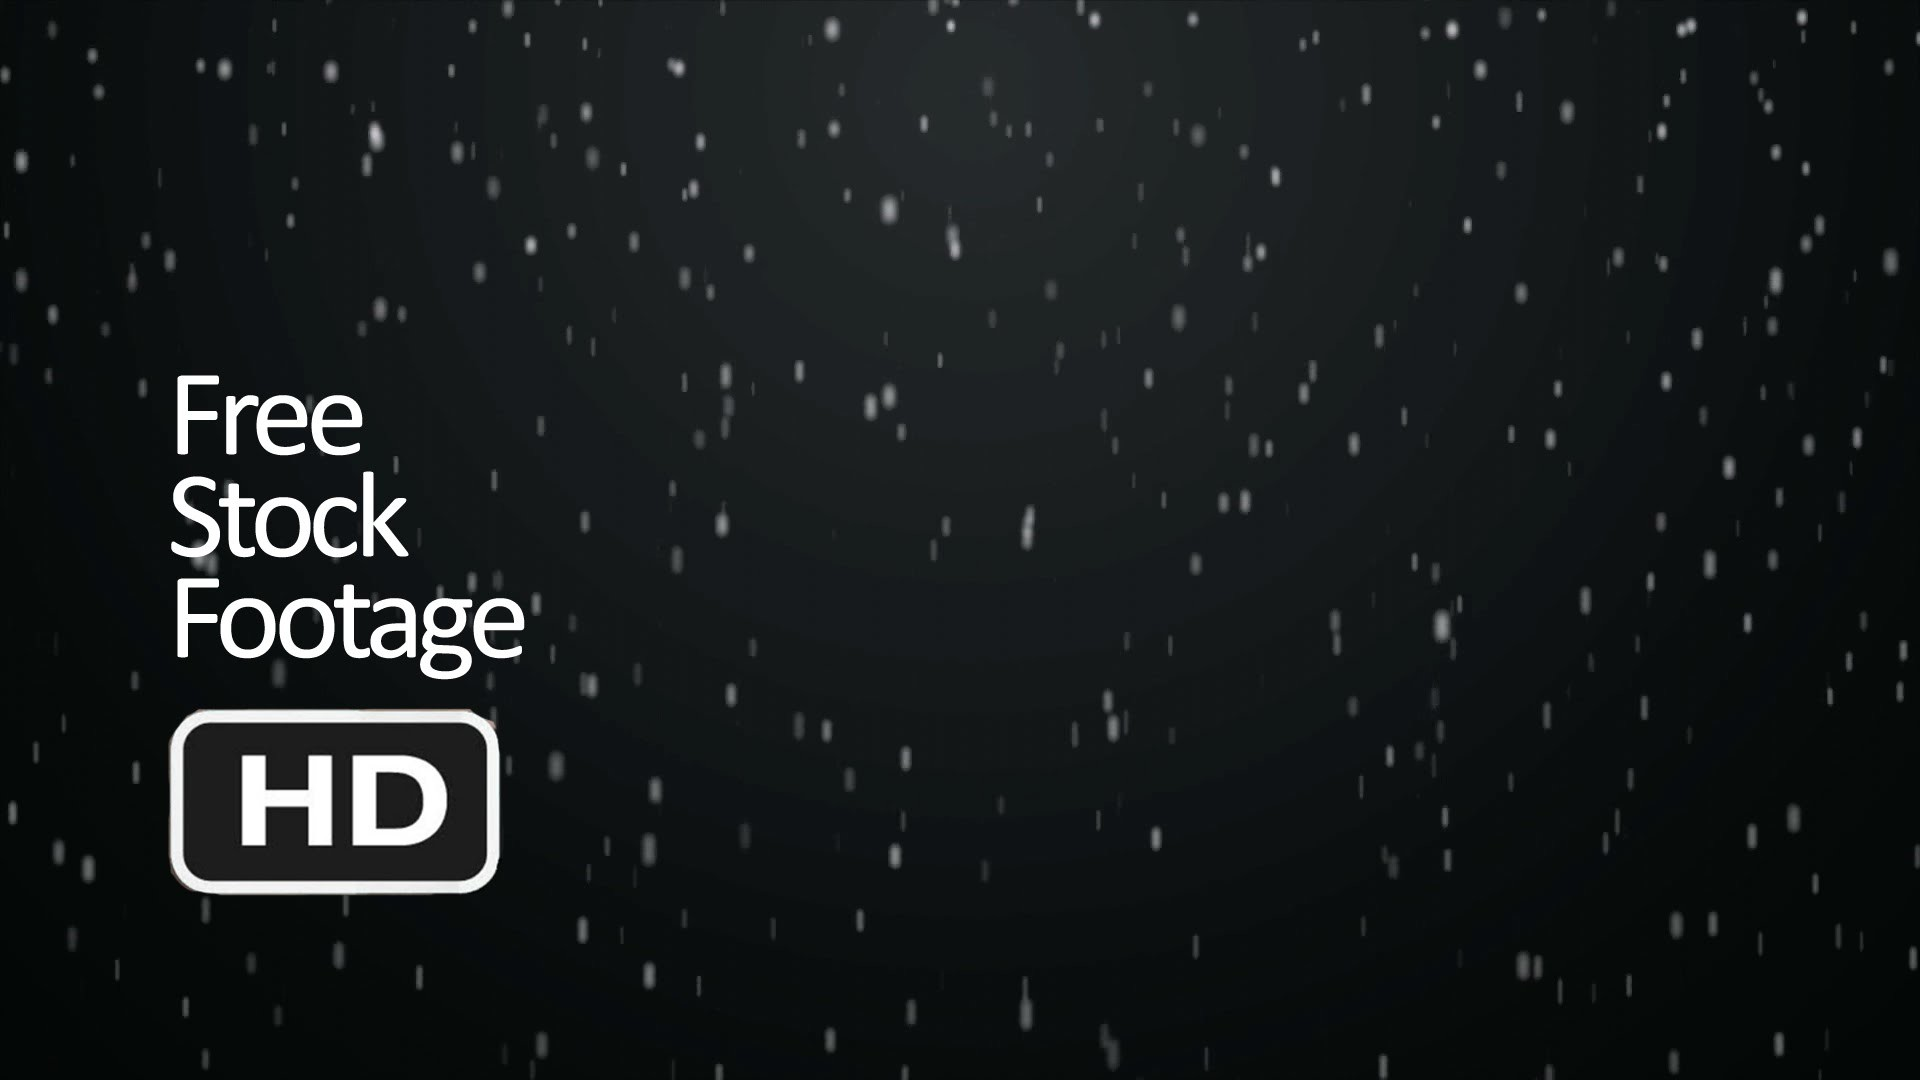 Free Stock Video Footage – Snowfall (Black background) HD 1080 – YouTube